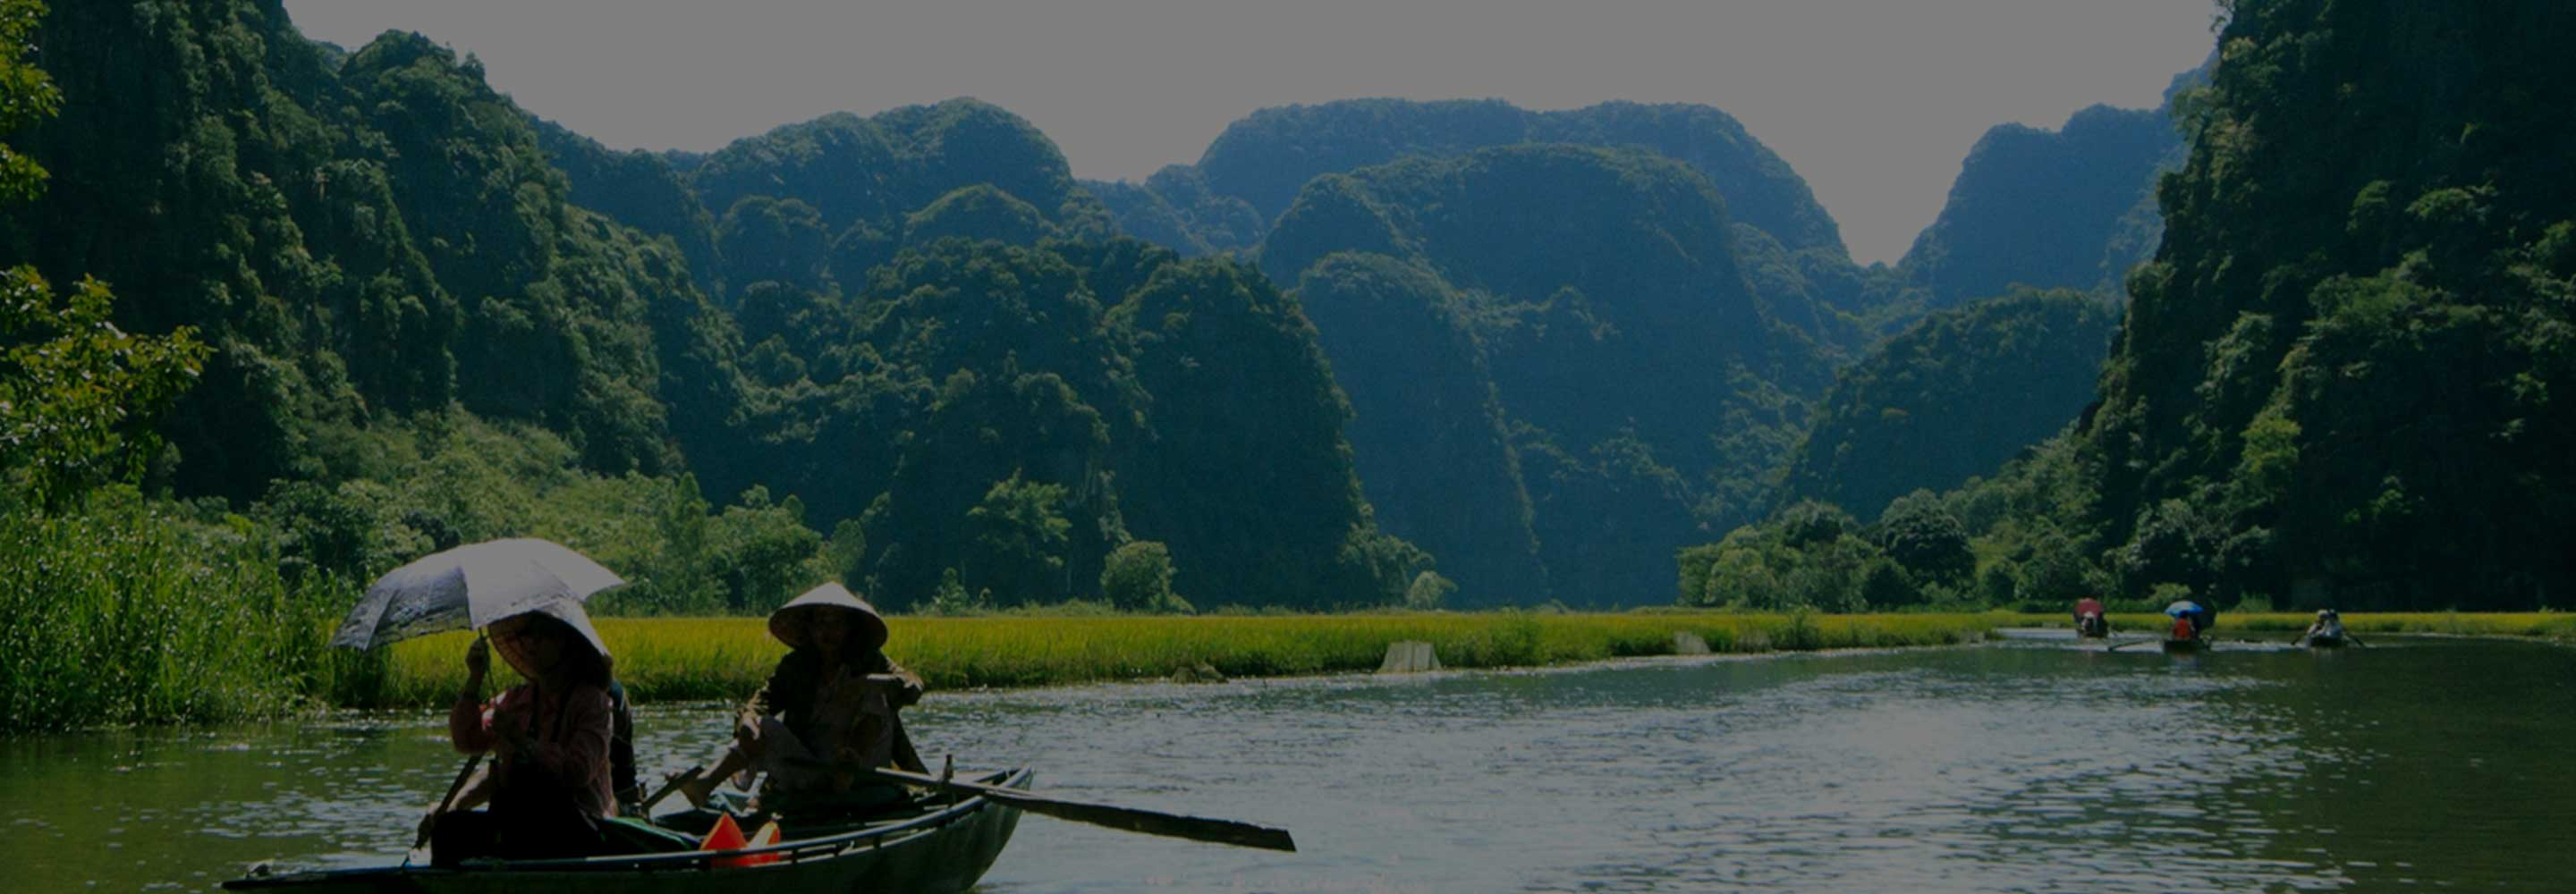 People in rowboats on river with lush green mountains in background